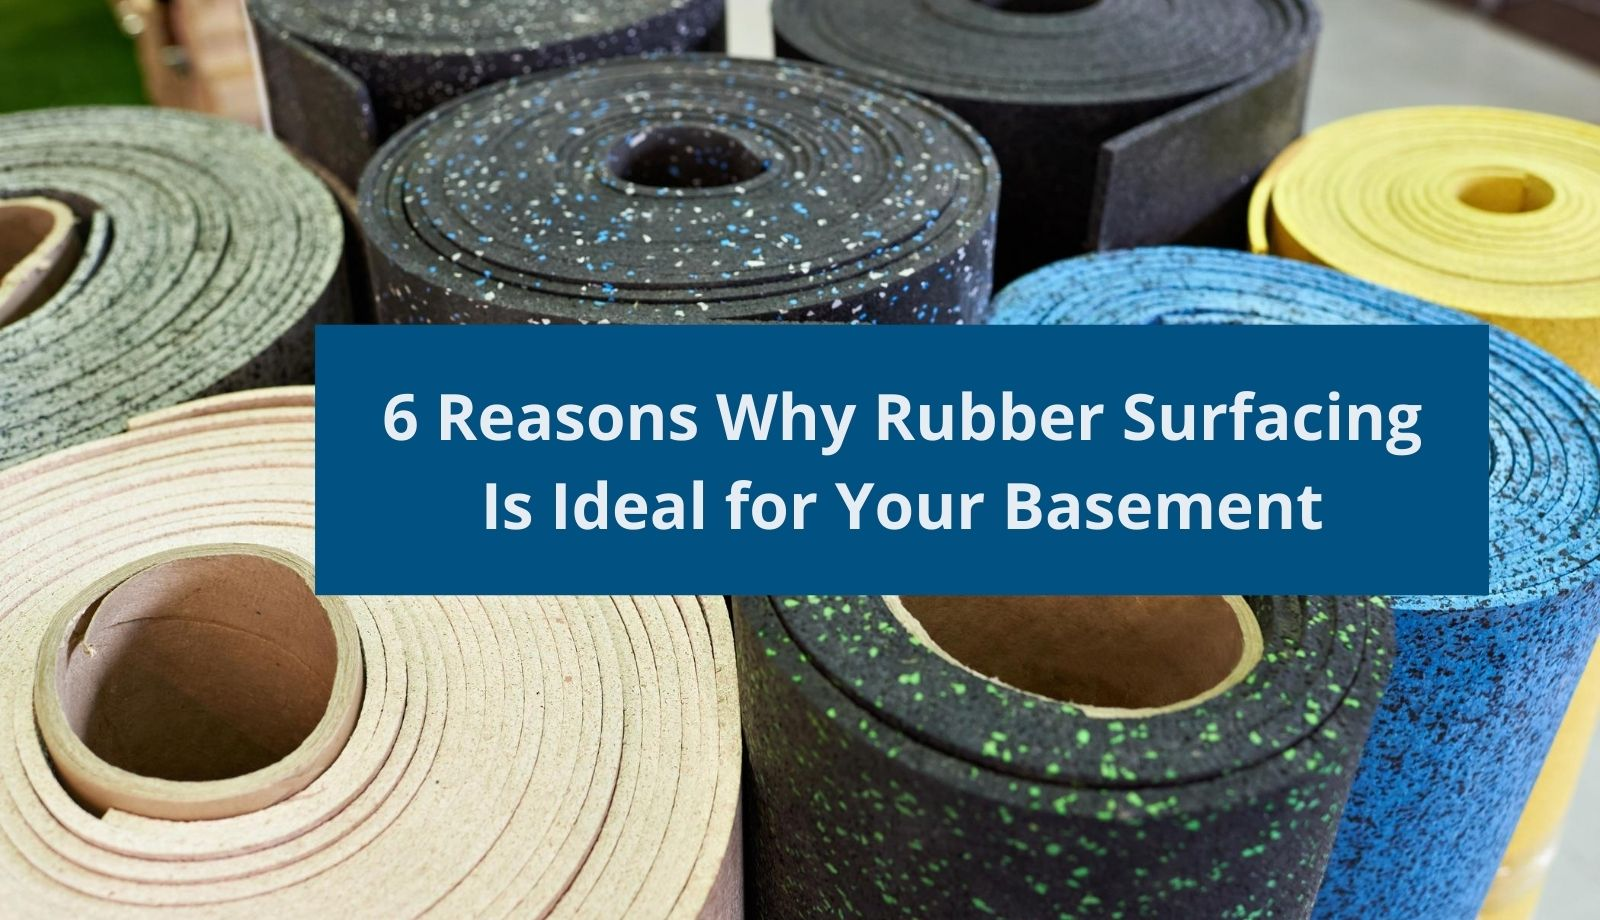 6 Reasons Why Rubber Surfacing Is Ideal for Your Basement